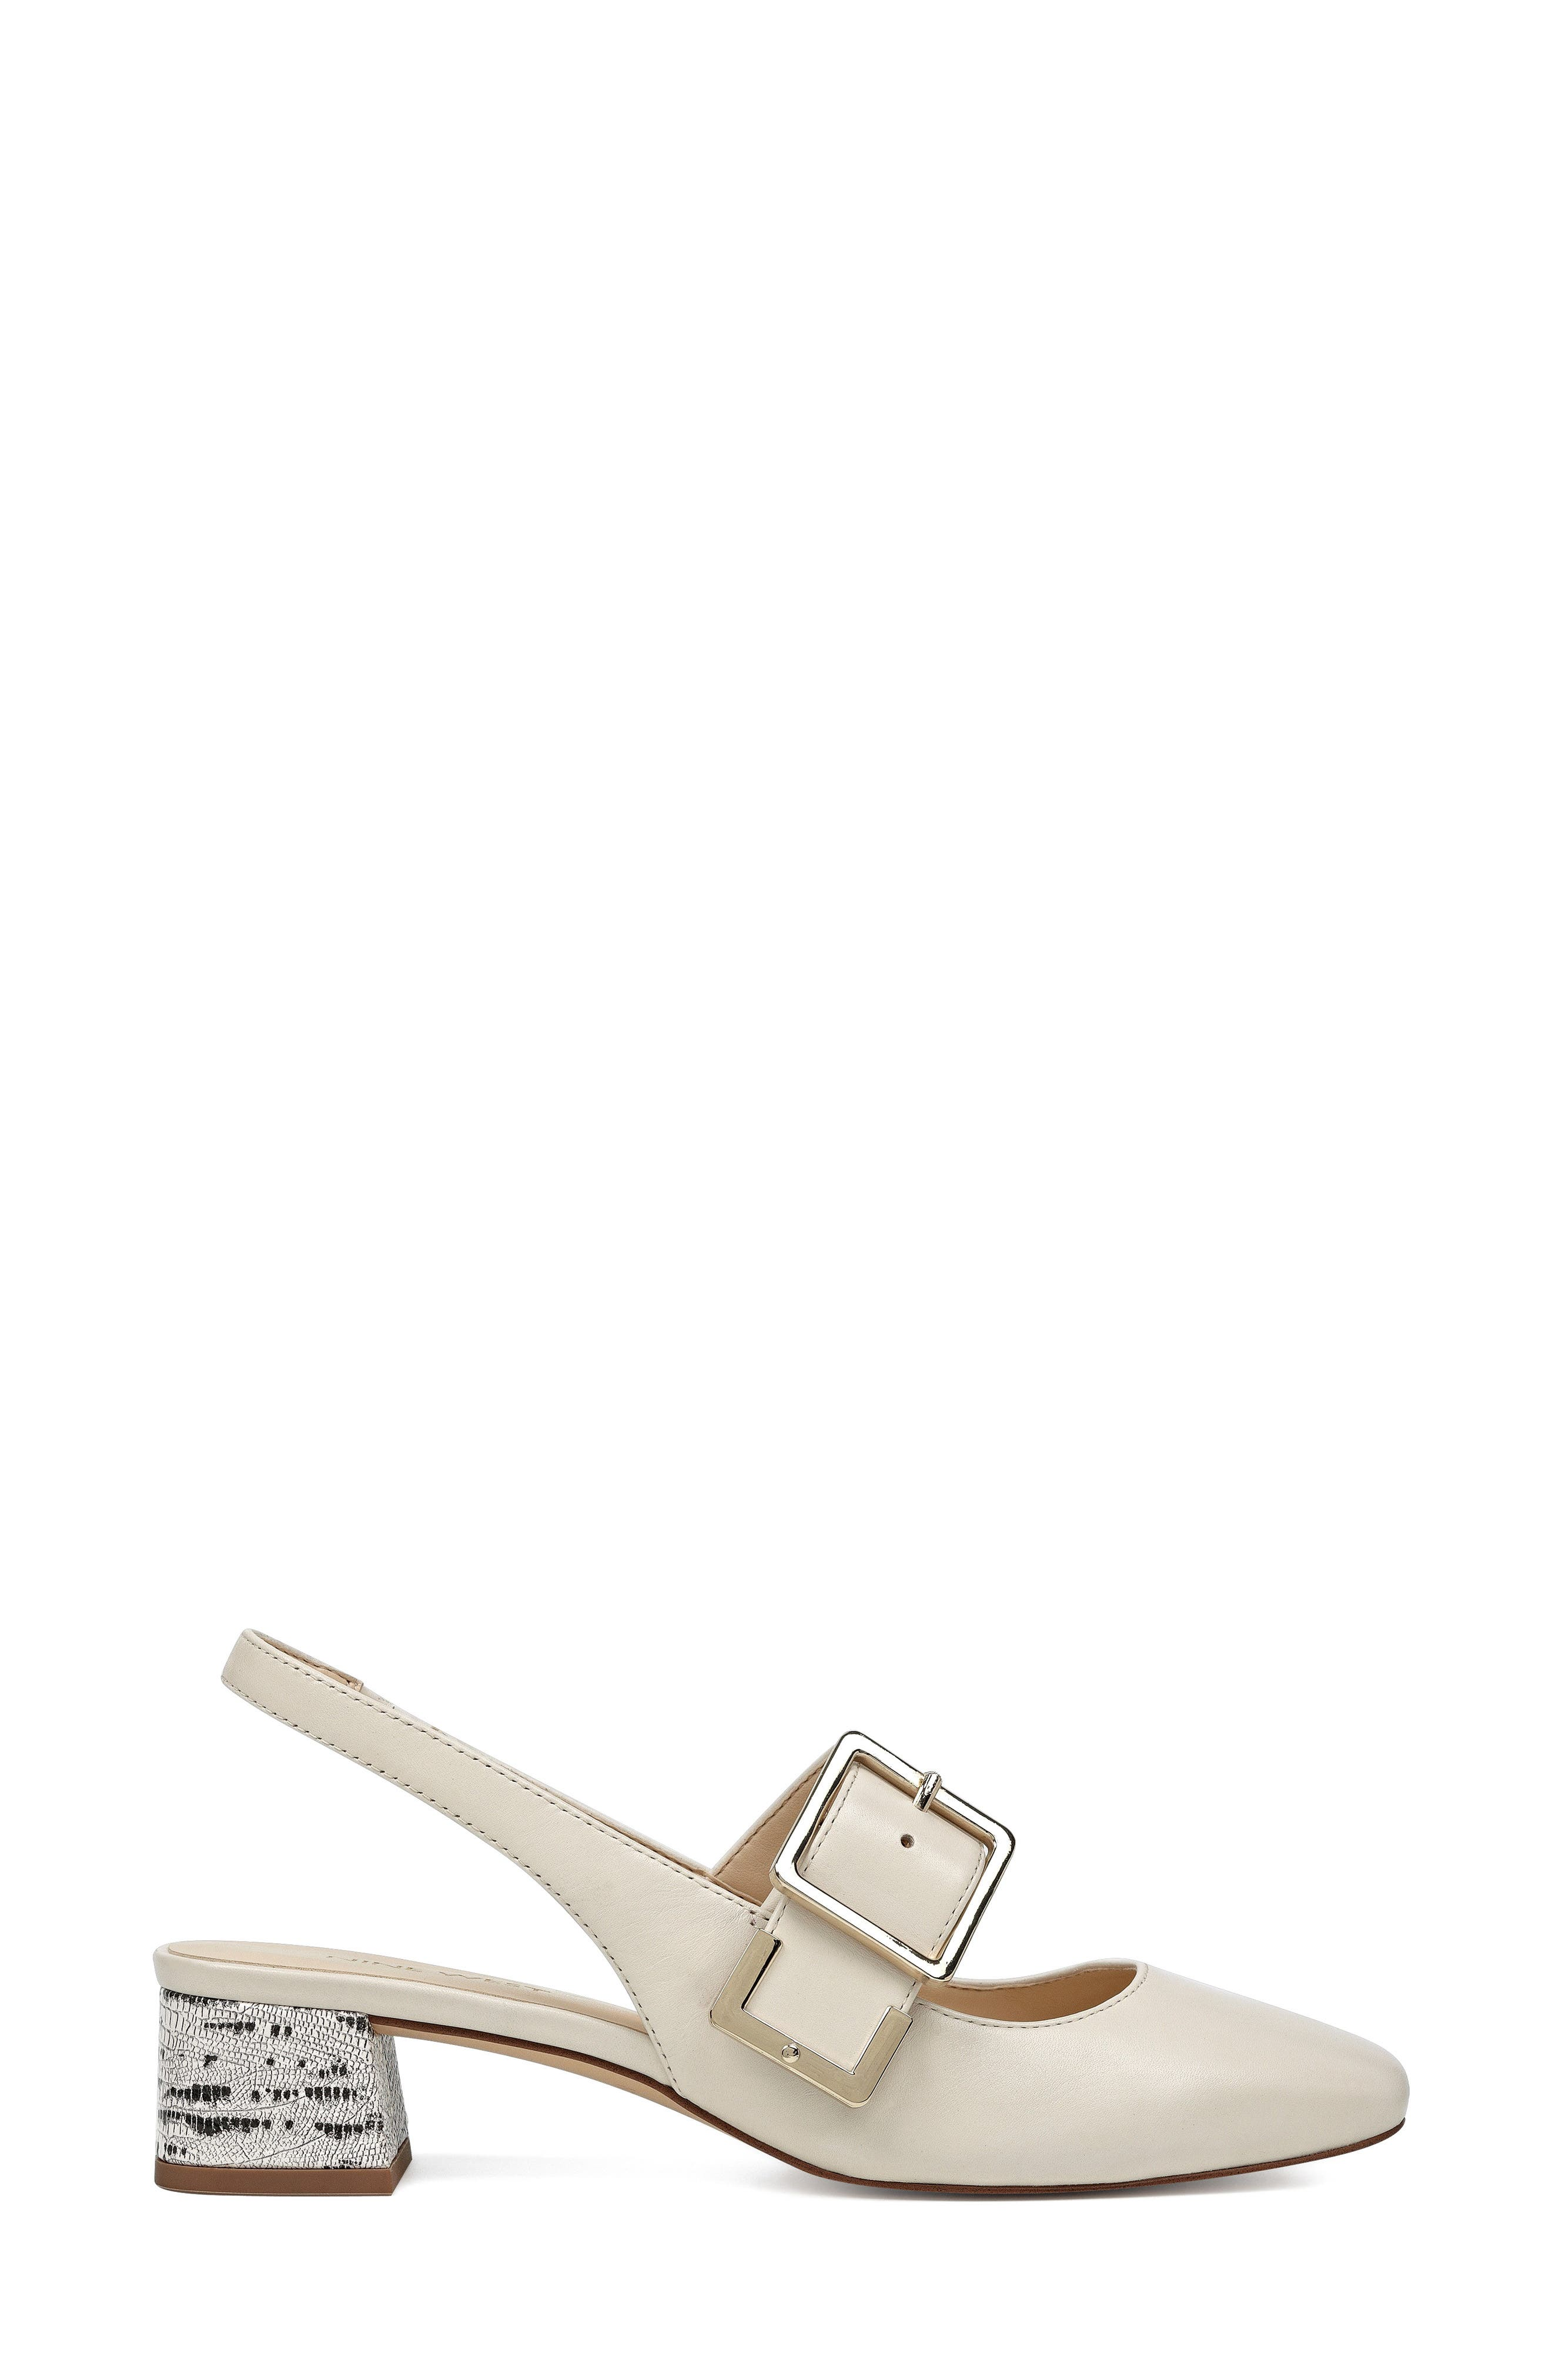 Wendor Slingback Pump,                             Alternate thumbnail 3, color,                             Off White Leather